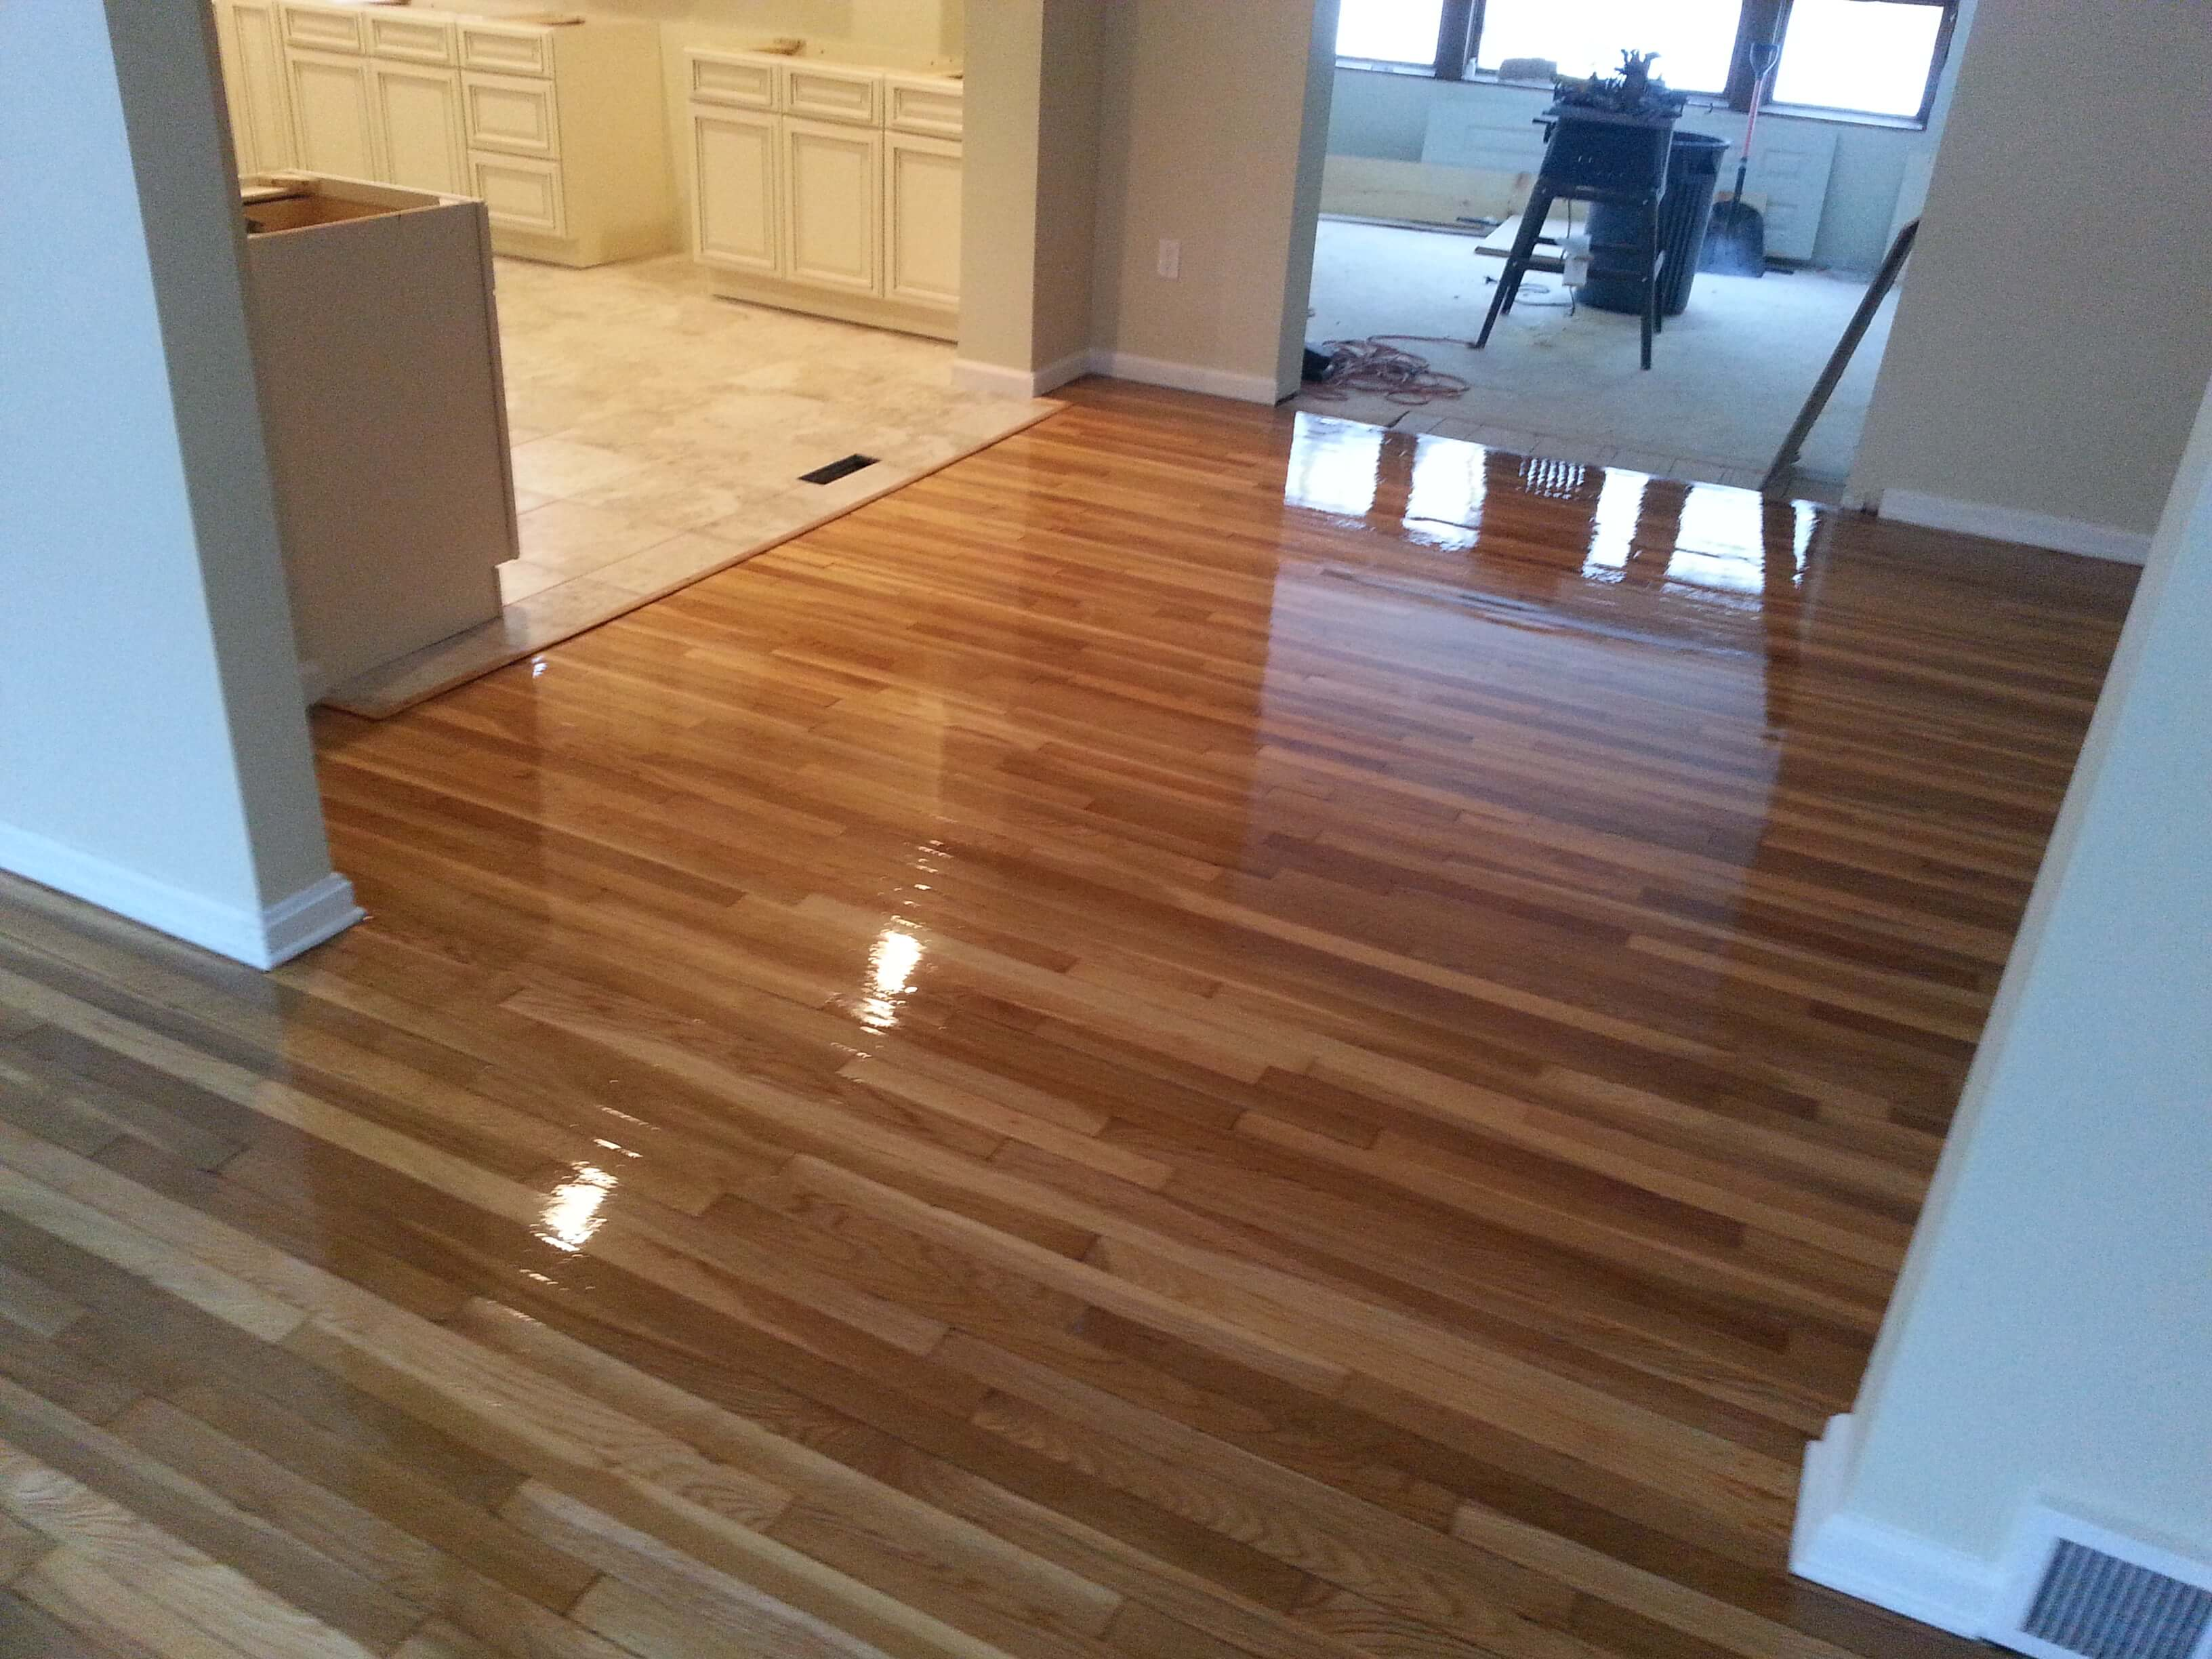 Wood Floor resurfacing done right with fabulous floors baltimore